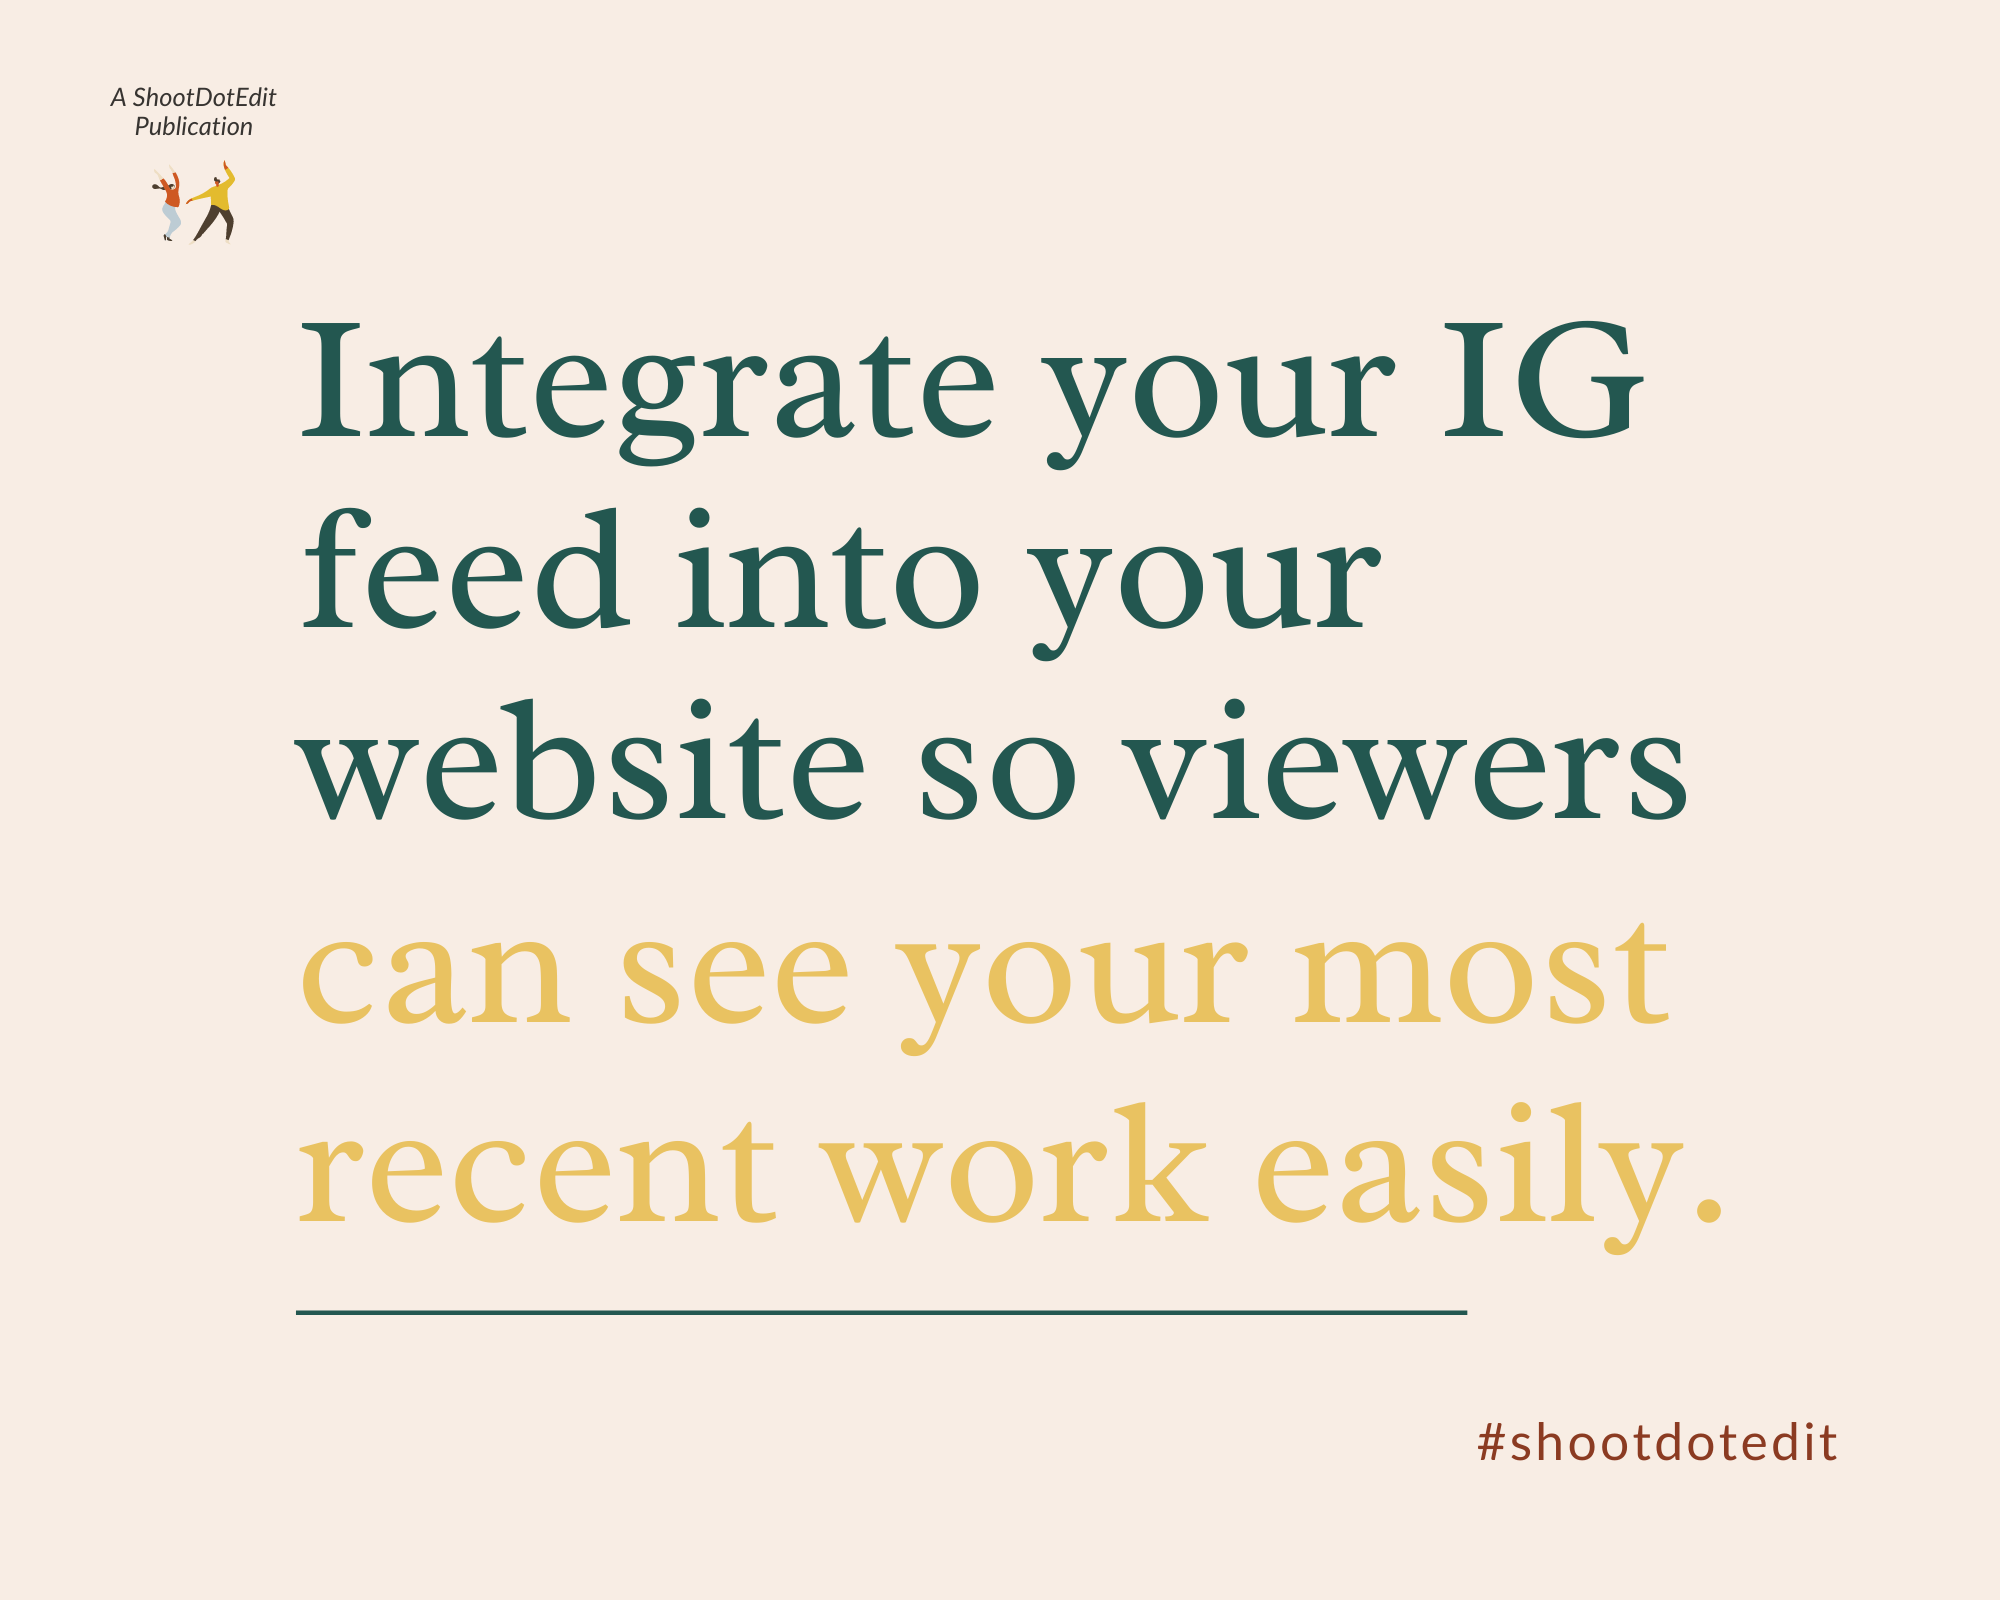 Infographic stating your IG feed into your website so viewers can see your most recent work easily